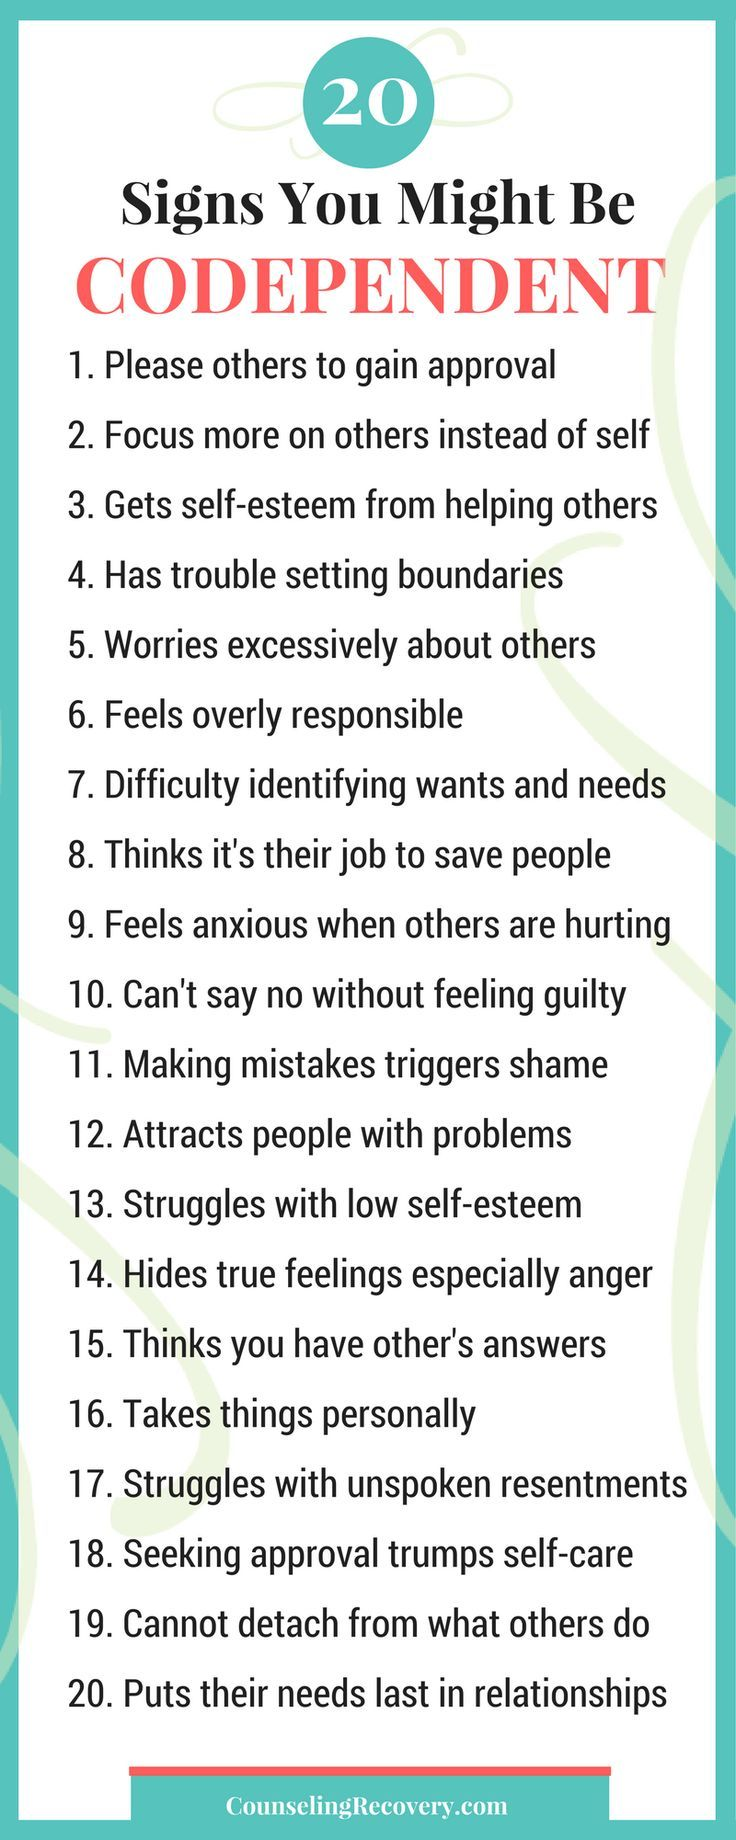 Healing codependency | codependency recovery | relationship problems |  codependent signs | 12 step recovery addiction | codependent relationships | Click to read more! #codependency #boundaries #codependencyrelationships